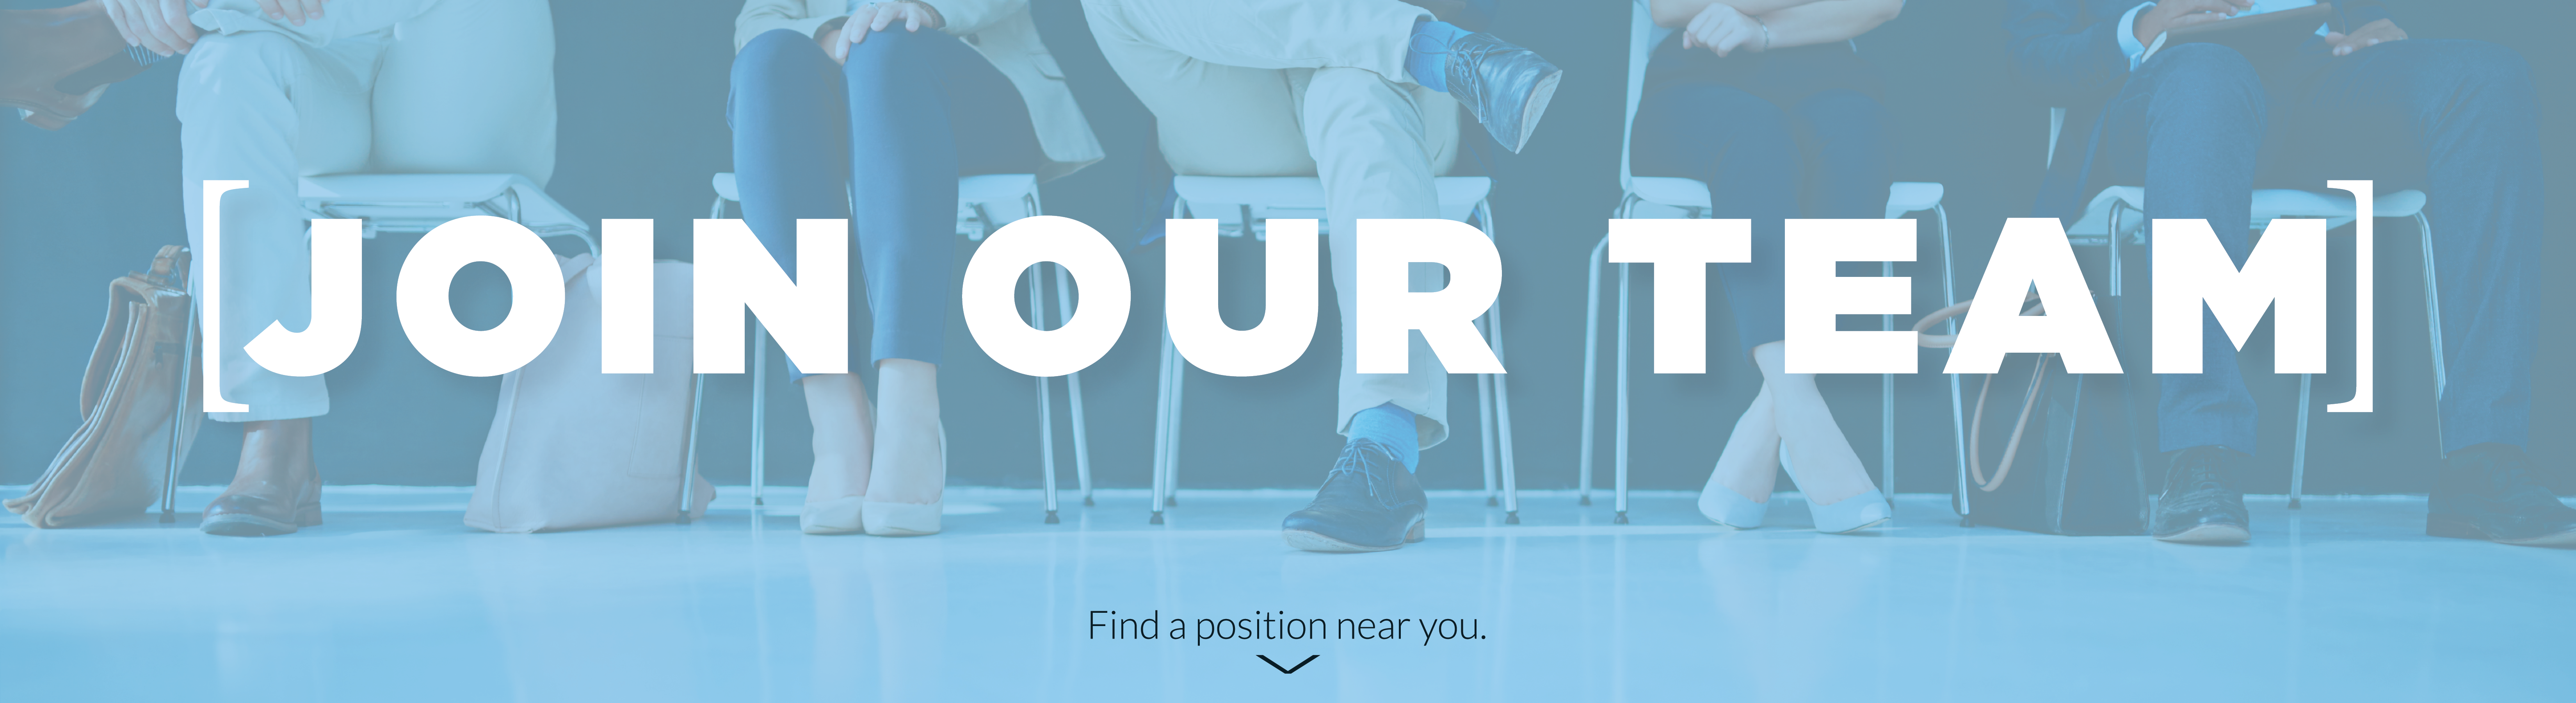 Join our Team - Now Hiring at Anomaly Squared